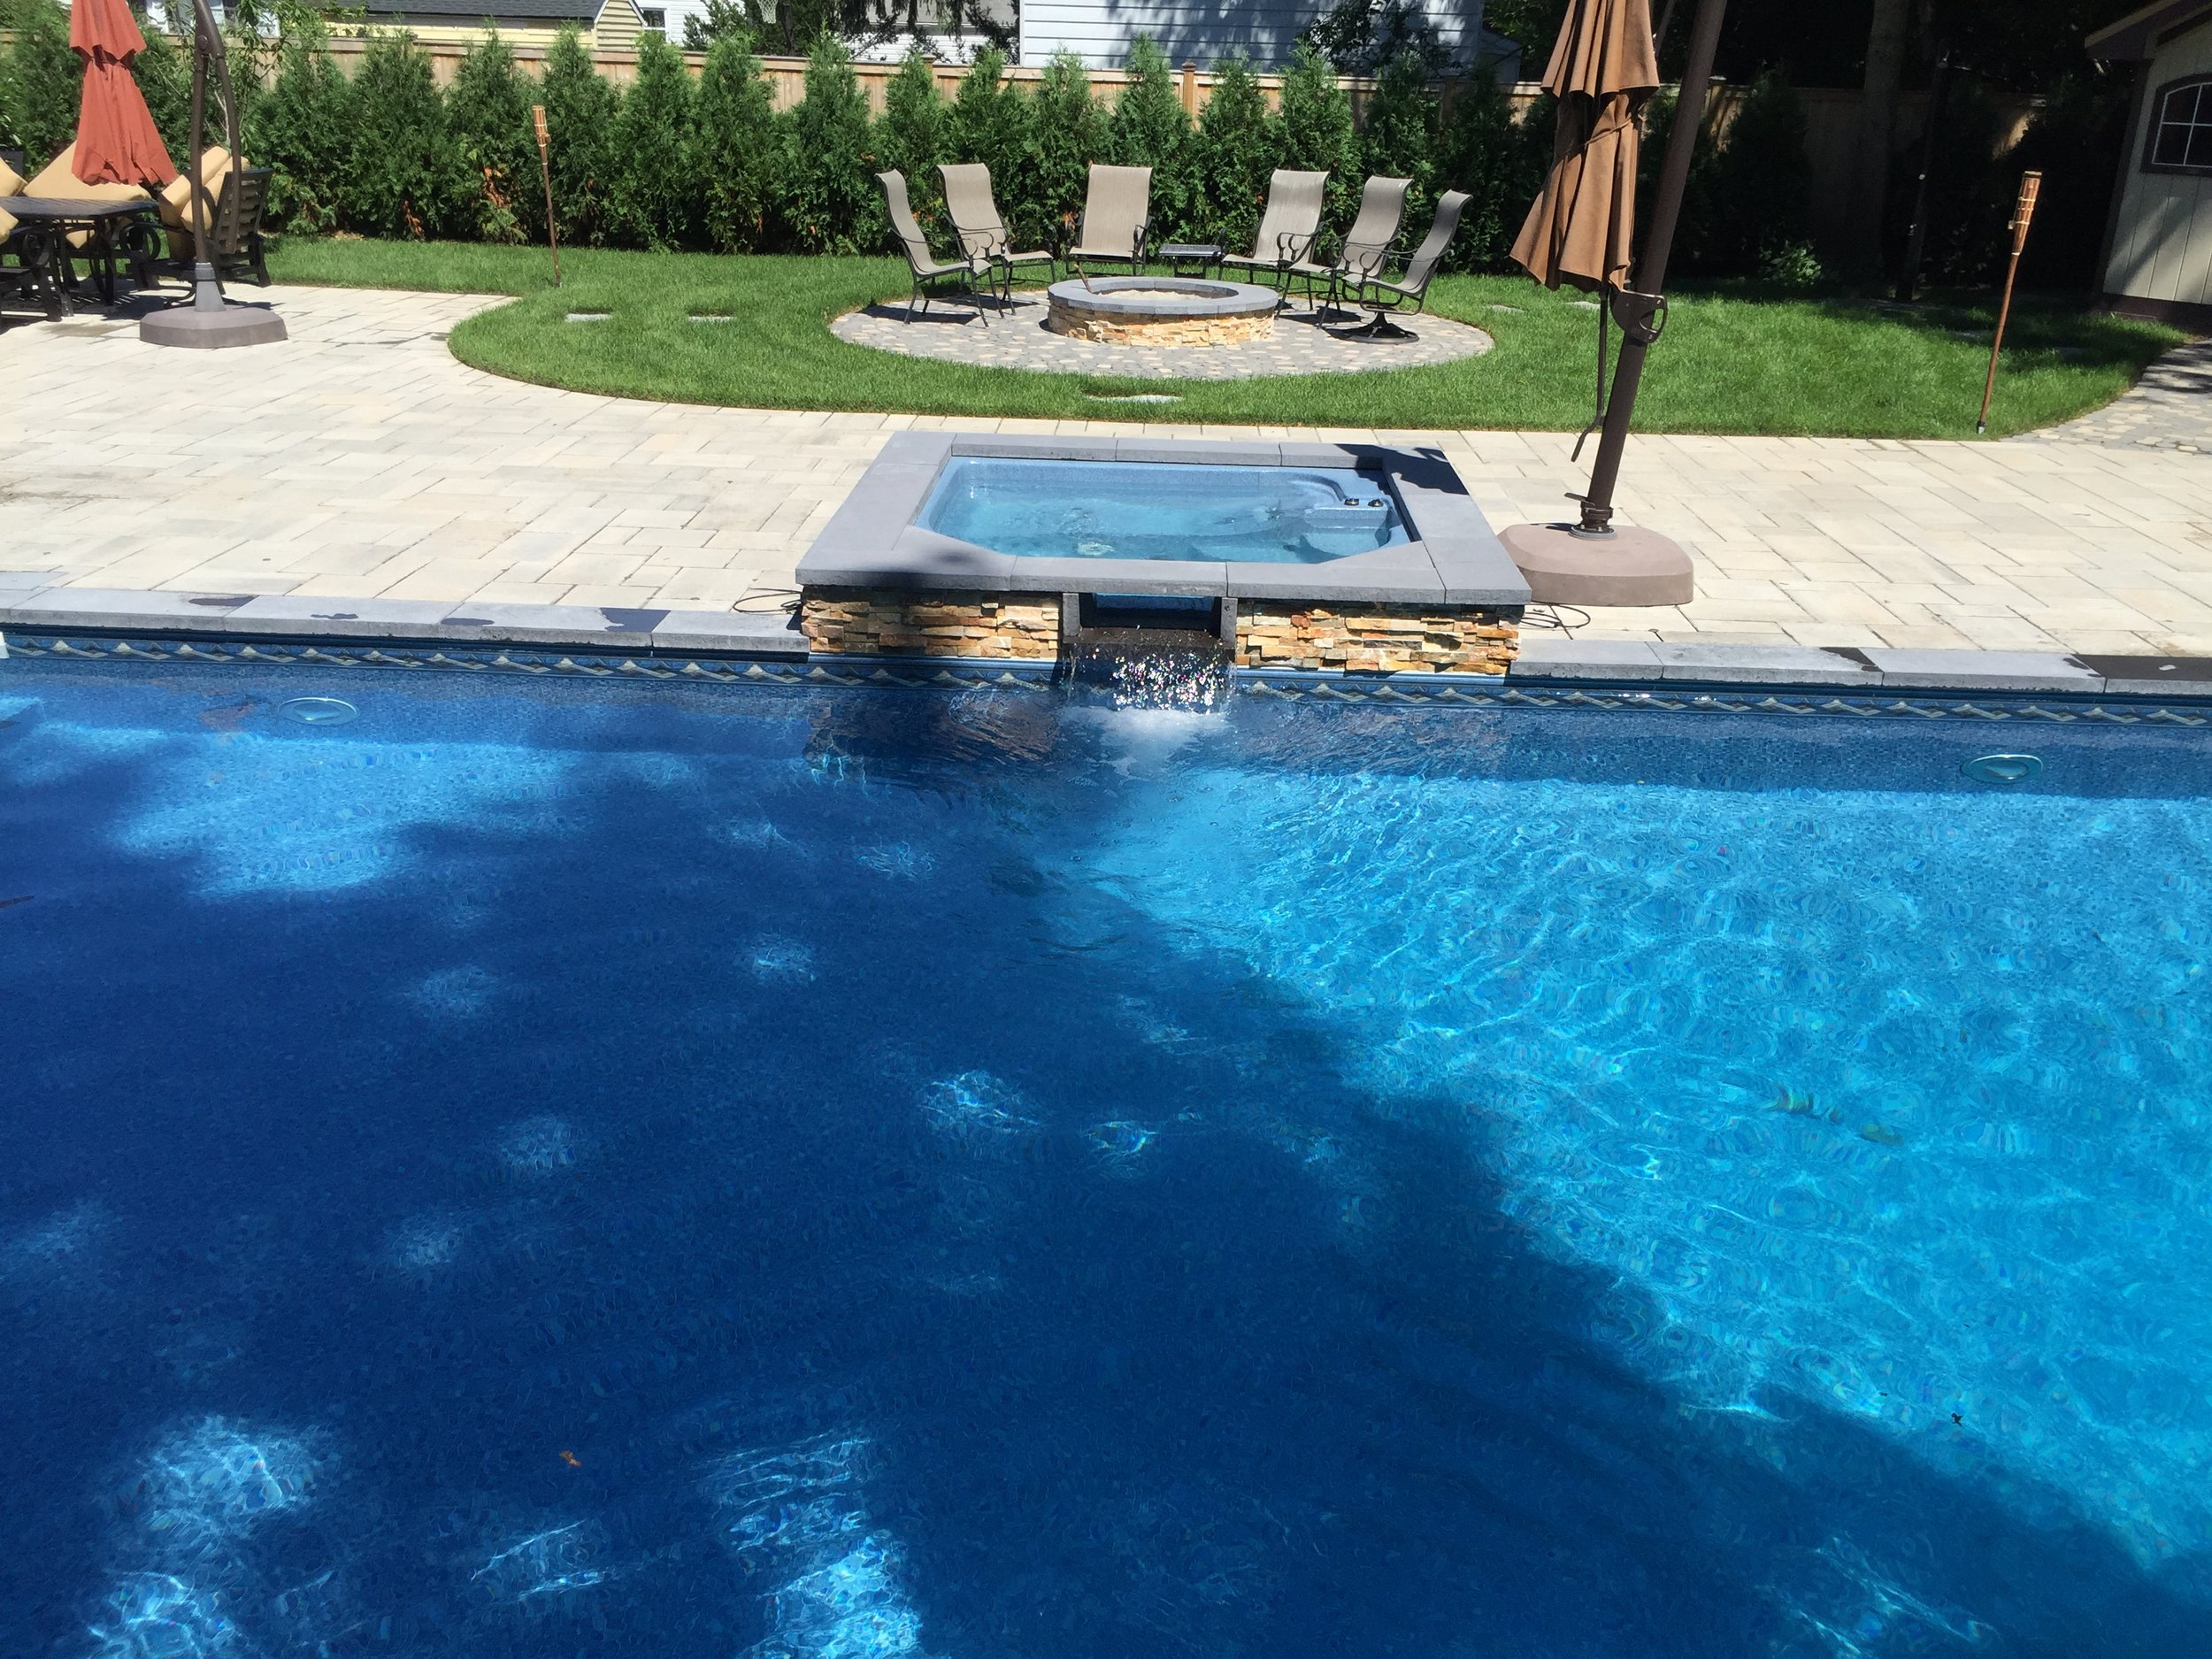 Top fiberglass pool design company in Long Island, NY